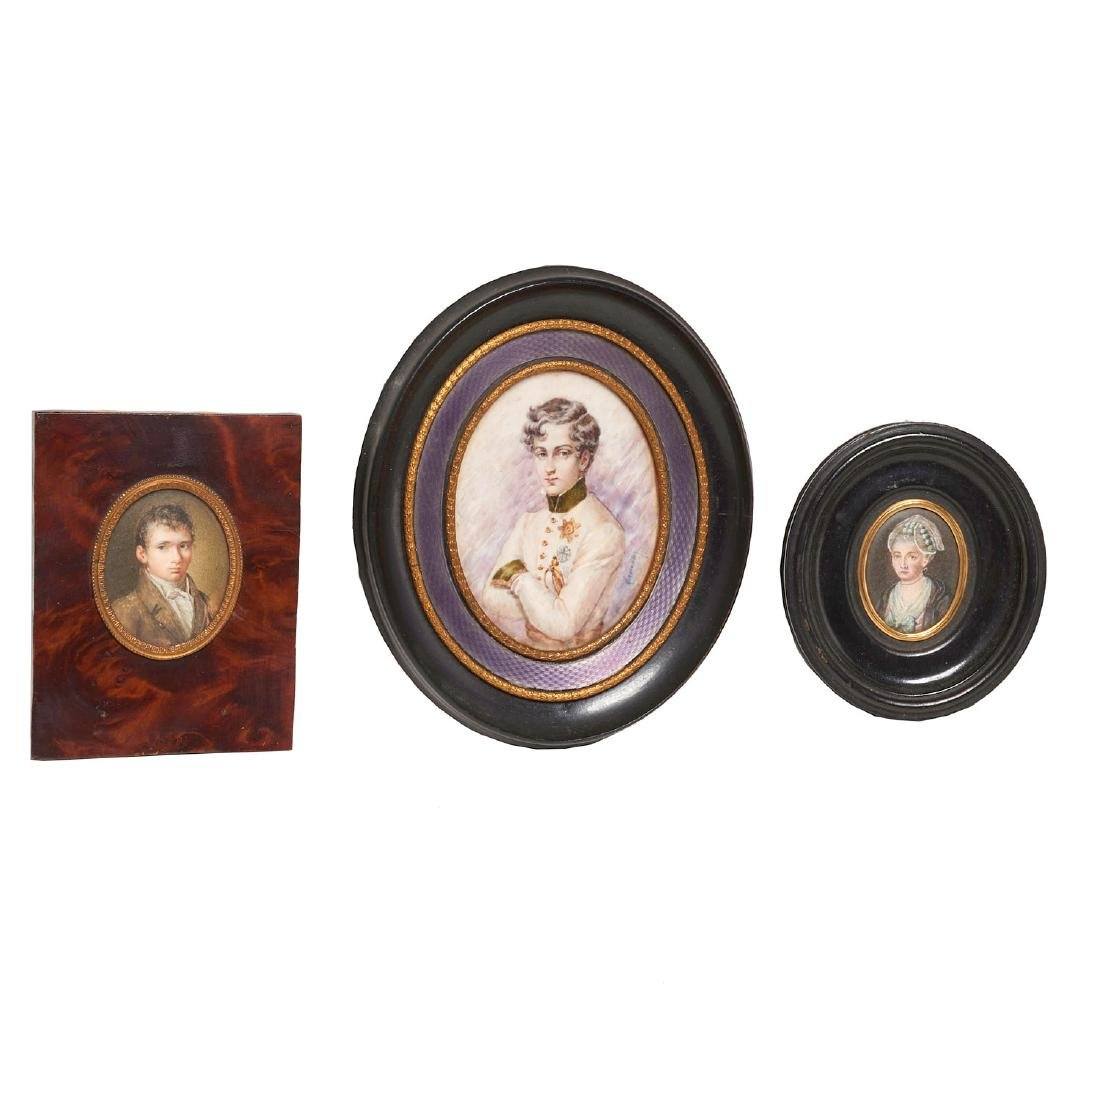 Collection European miniature paintings and icon - 2